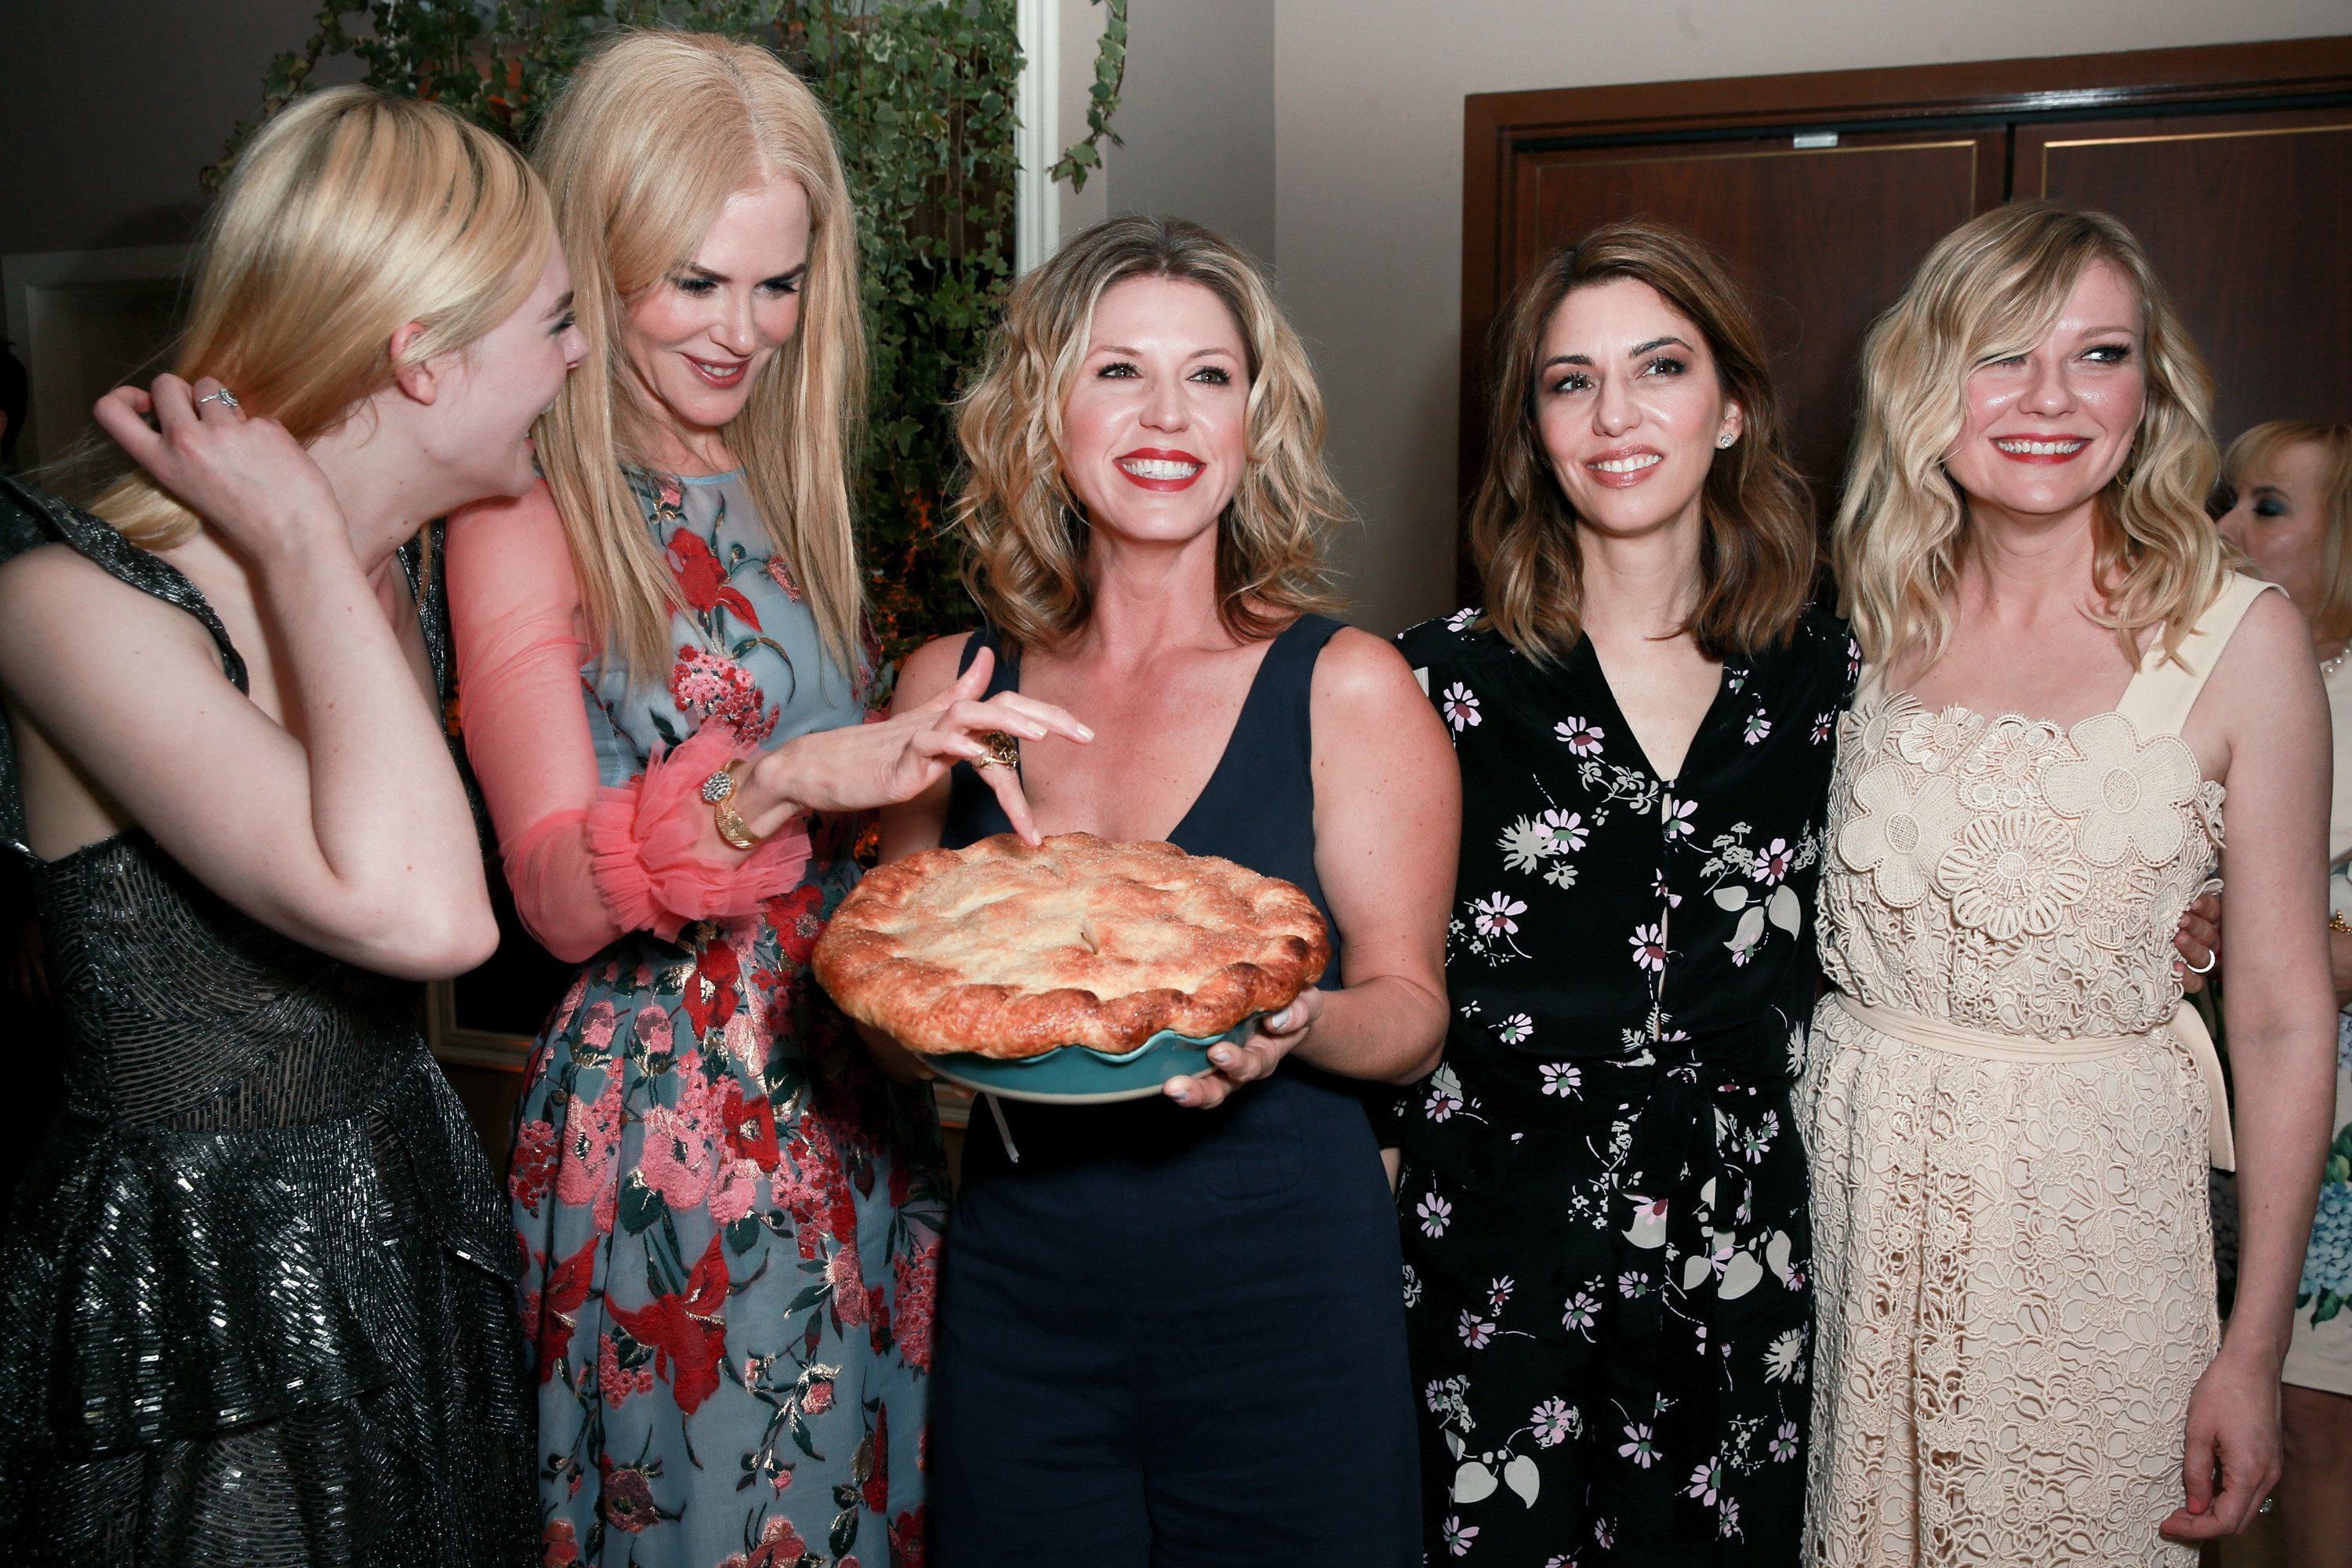 LOS ANGELES, CA - JUNE 12:  (L-R) Actors Elle Fanning, Nicole Kidman, Chef Casey Thompson, director Sofia Coppola and actor Kirsten Dunst attend the after party for the premiere of Focus Features' 'The Beguiled' at Sunset Tower Hotel on June 12, 2017 in Los Angeles, California.  (Photo by Rich Fury/Getty Images)